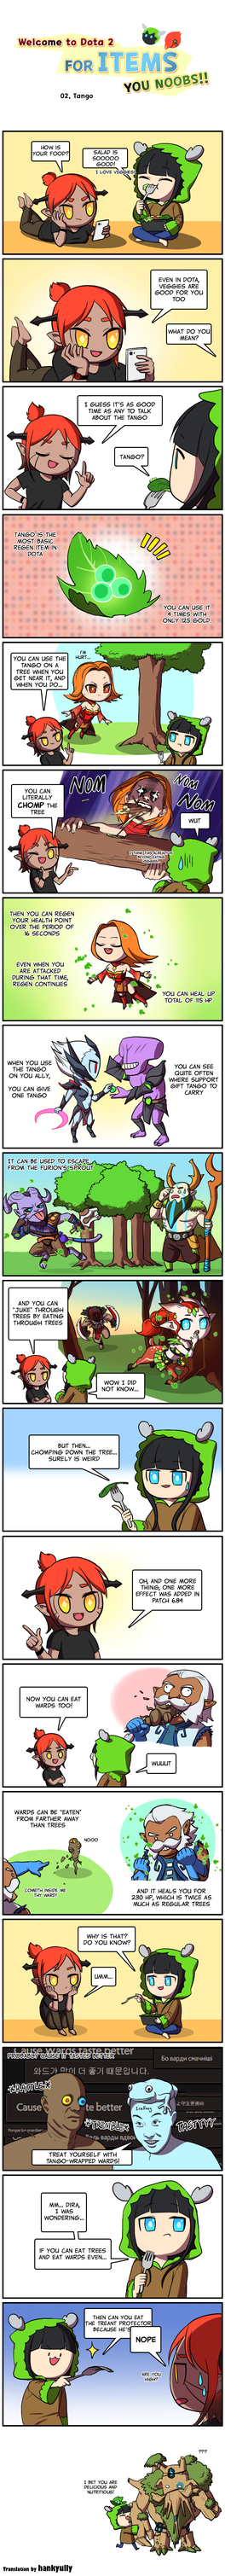 Welcome to Dota 2 for ITEMS, you NOOBS! - 02 by Ulsae